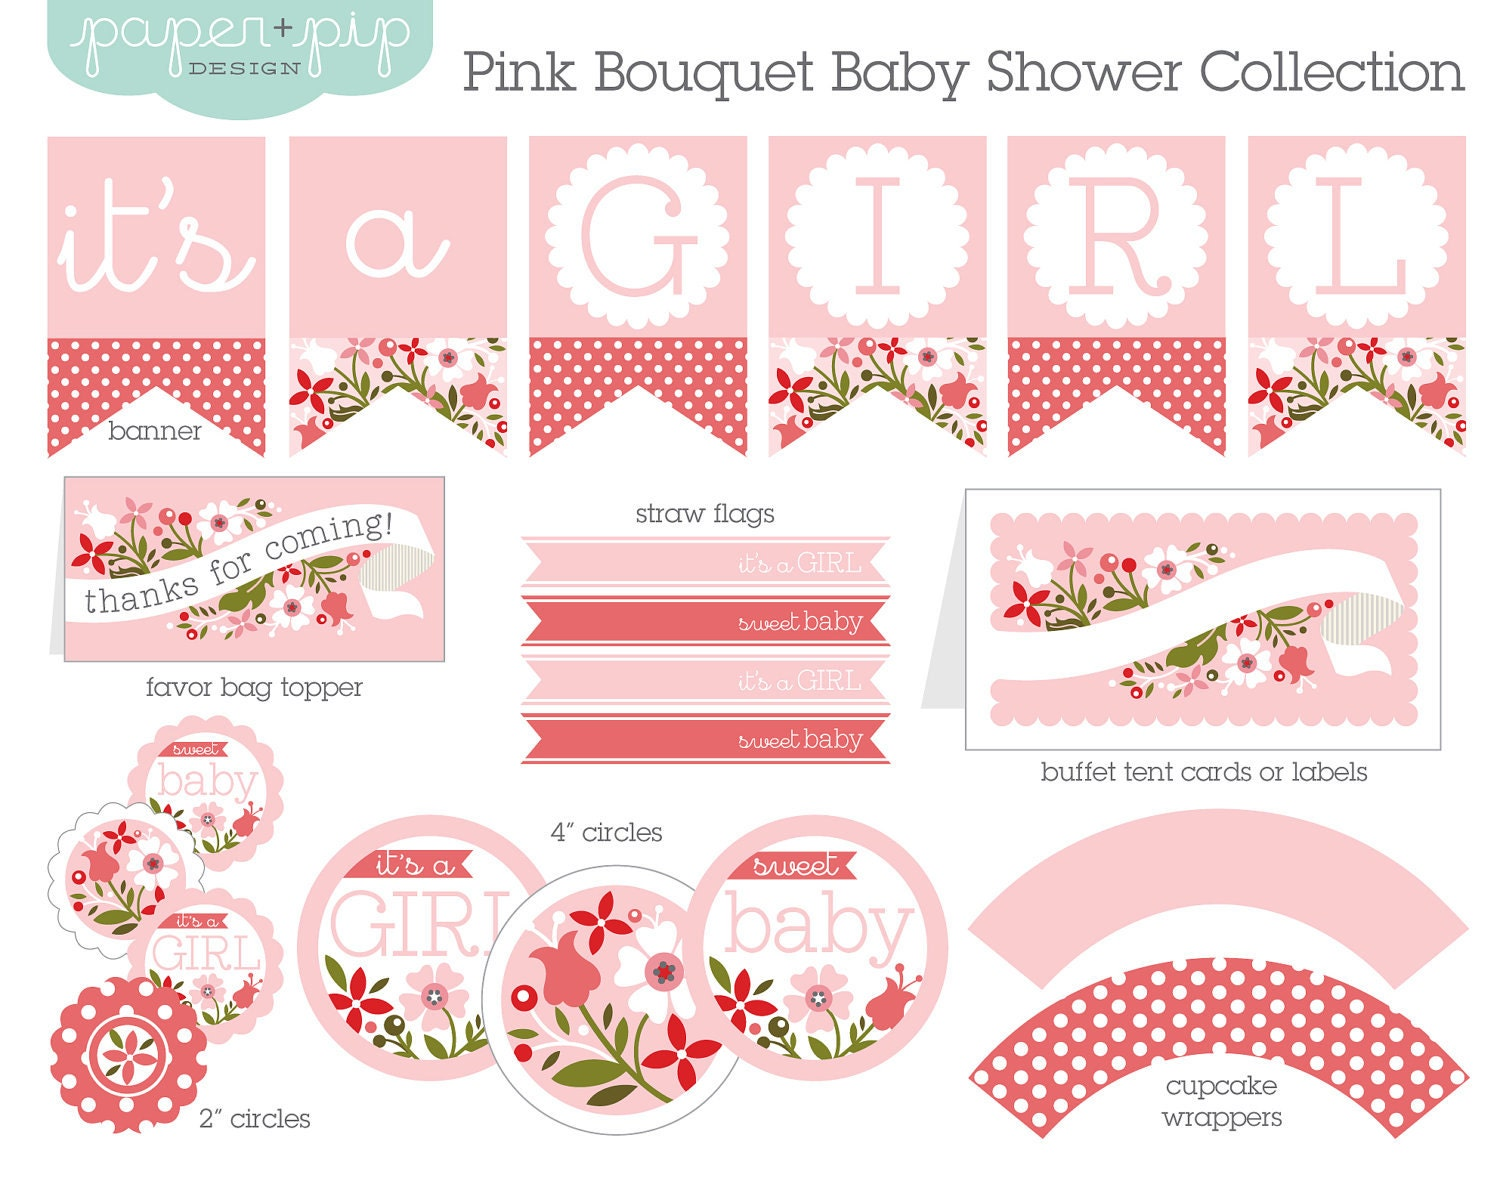 Baby shower decorations printable pink bouquet for Decoration word